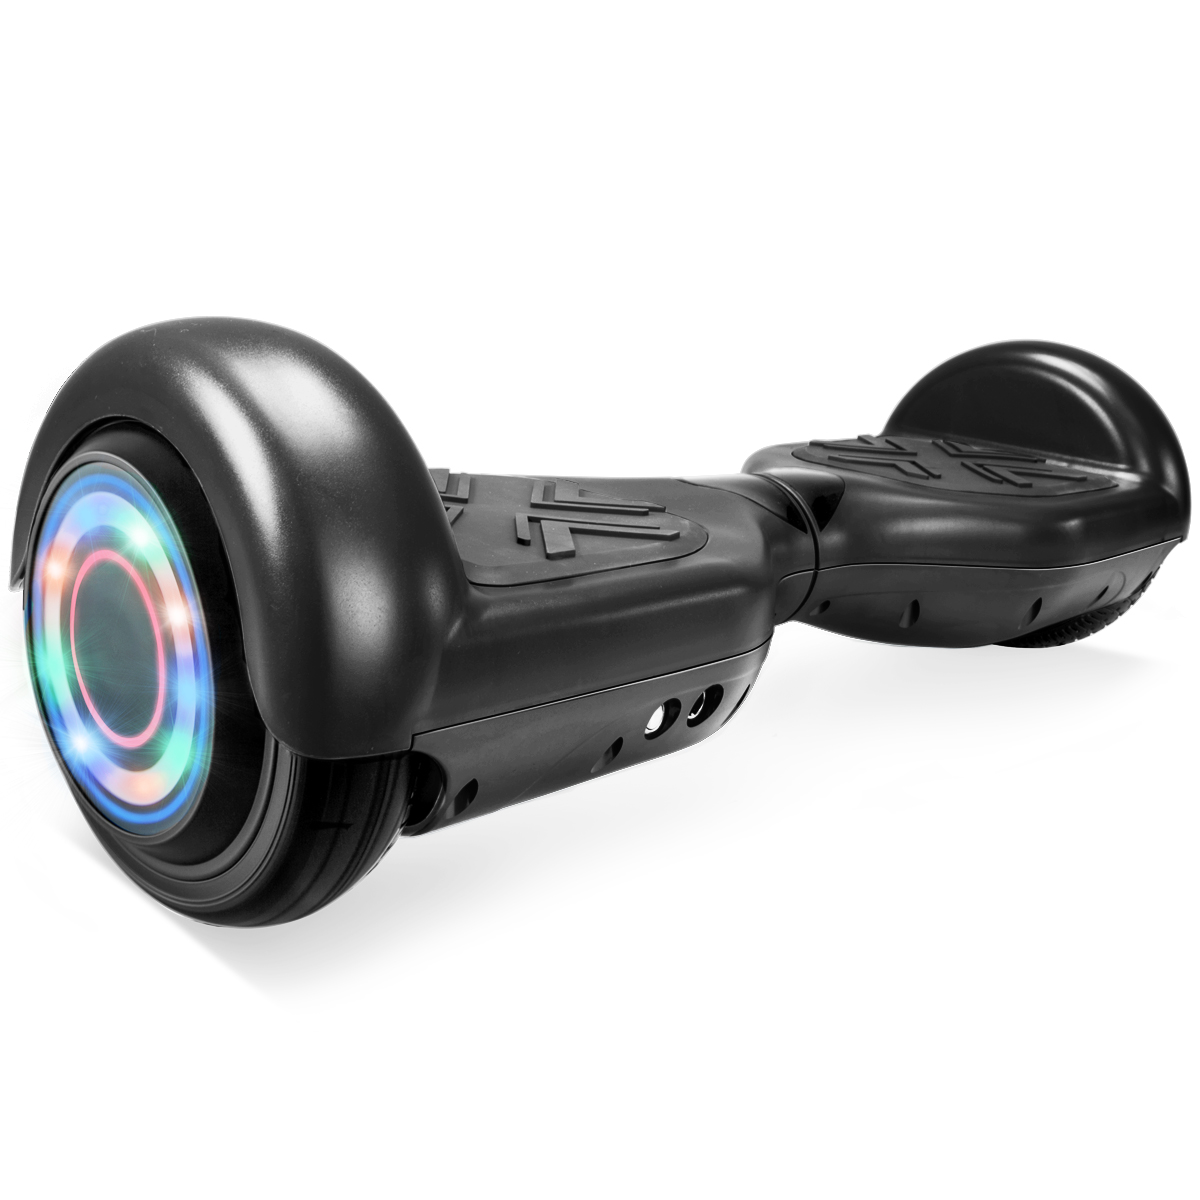 """XtremepowerUS UL 2272 Certificated 6.5"""" Self Balancing Hoverboard Scooter w/ Bluetooth Speaker - Matte Black"""